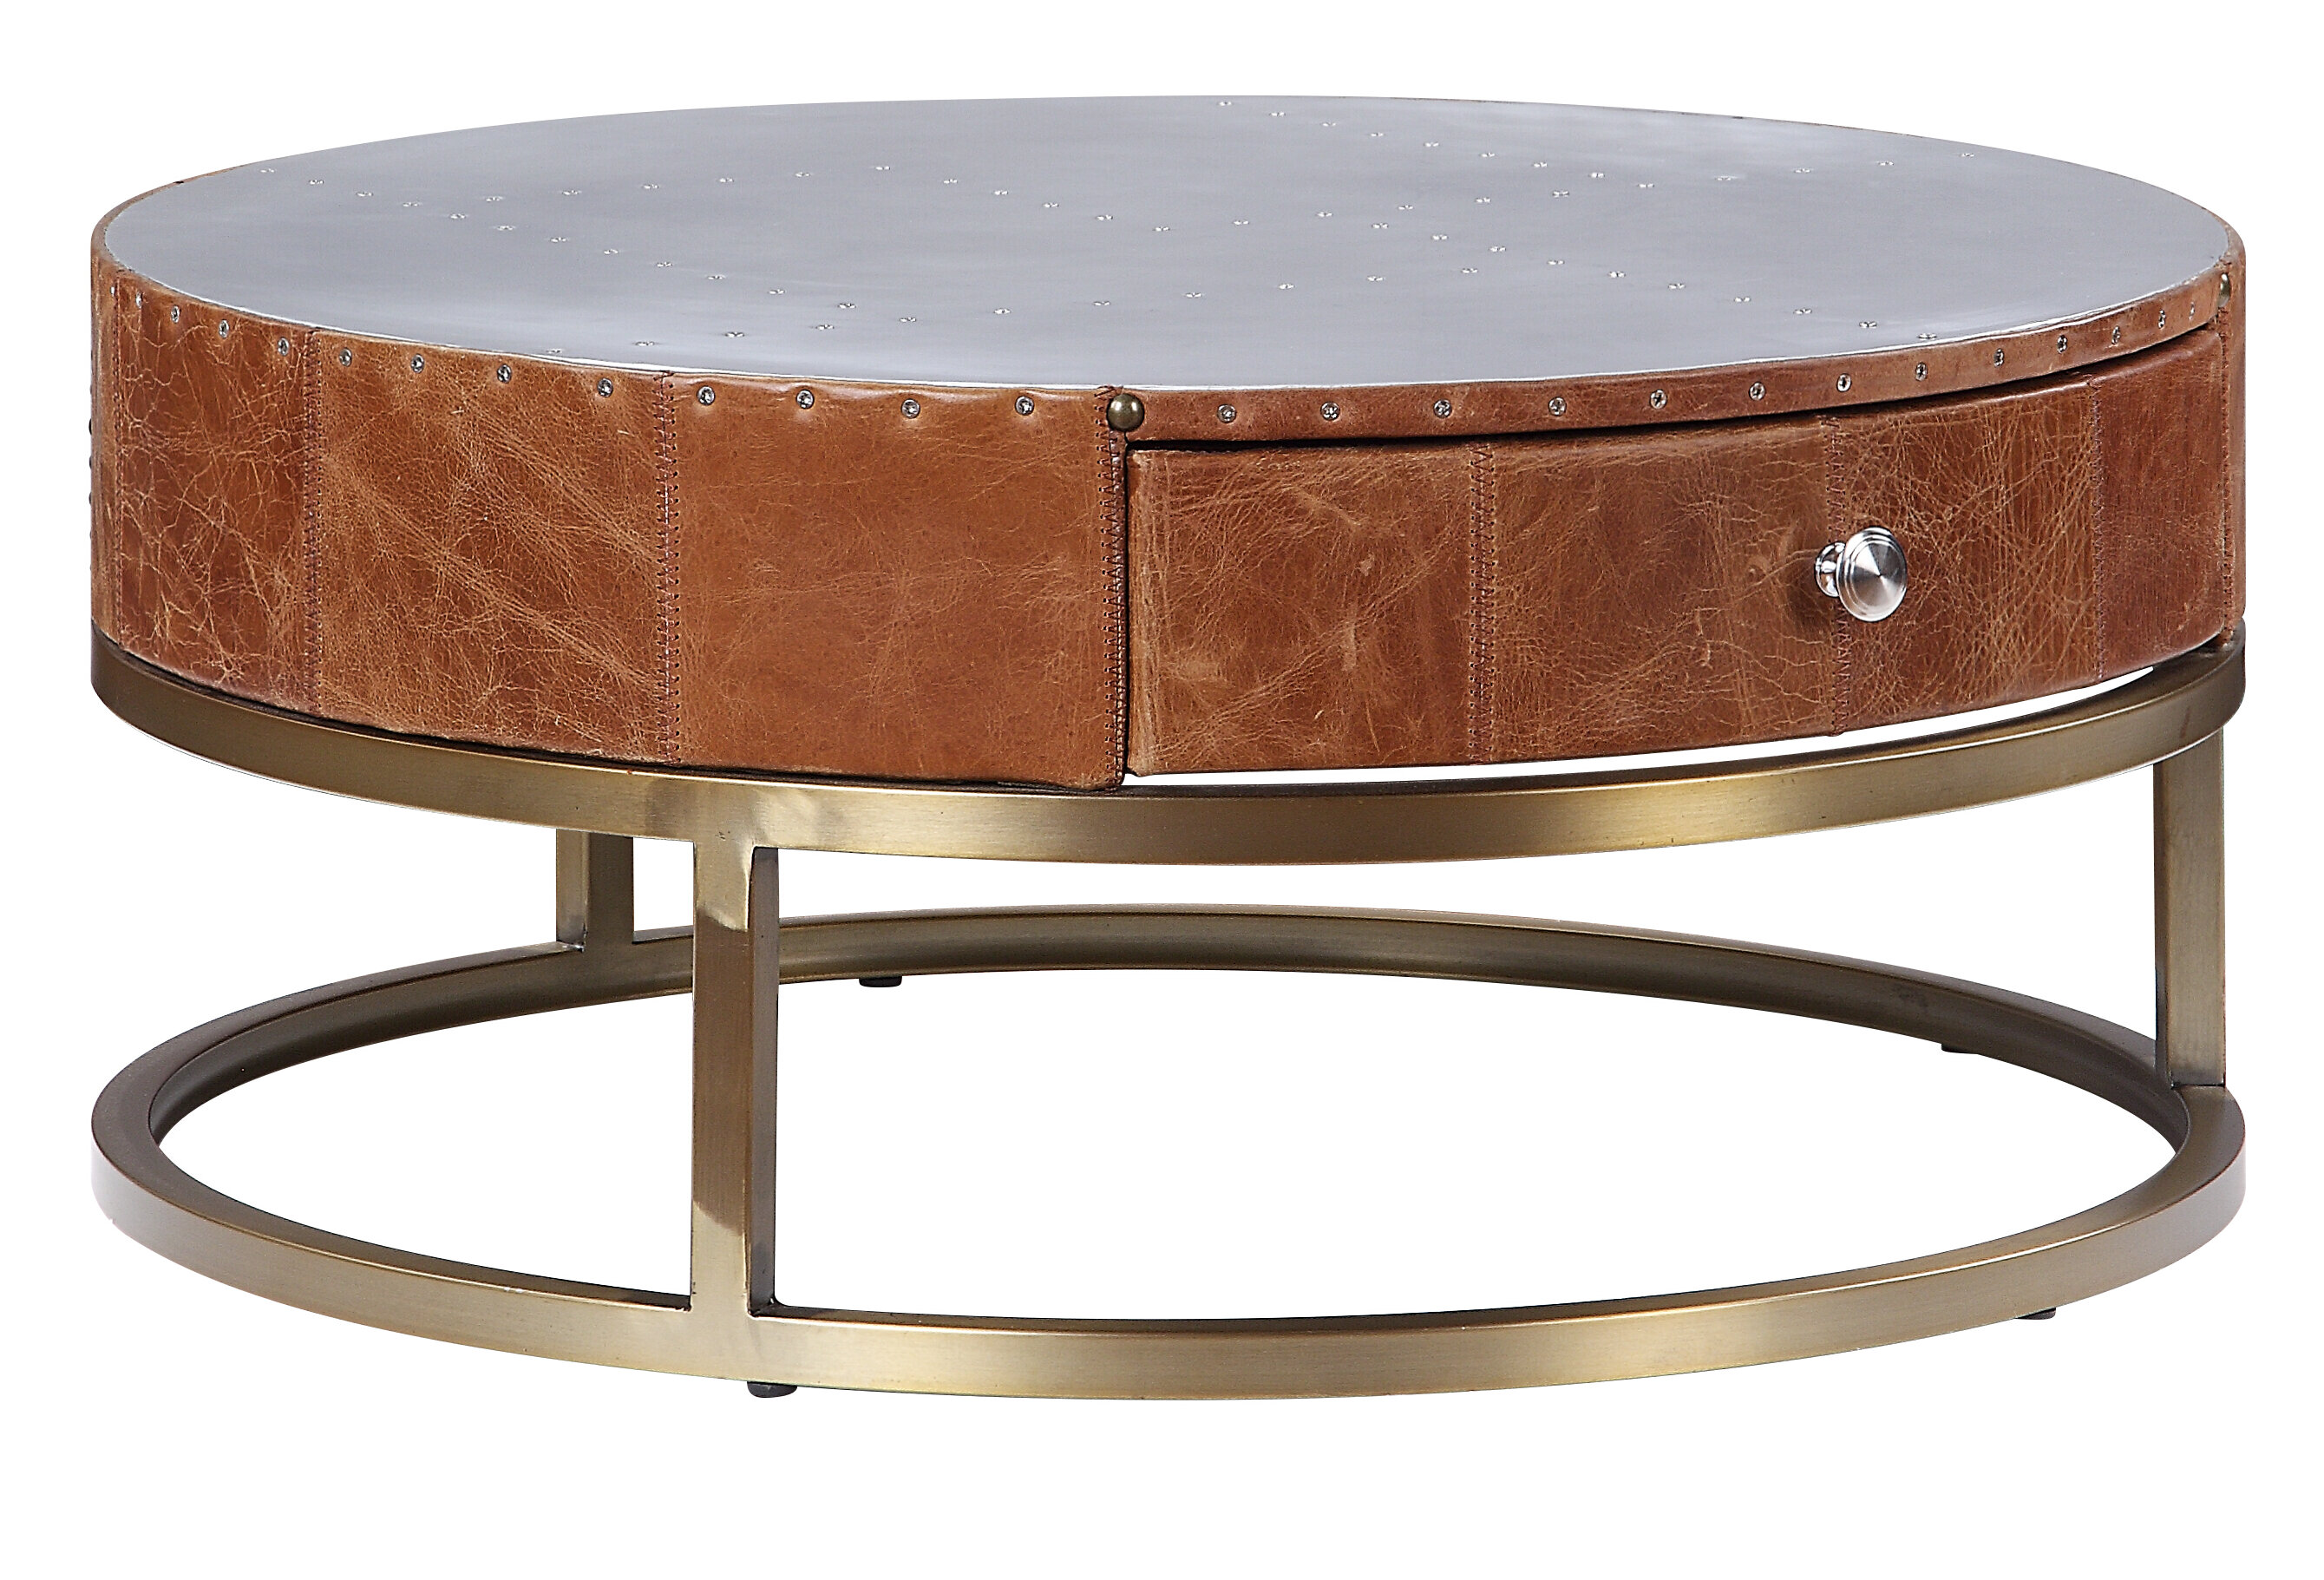 Woodford Coffee Table With Storage